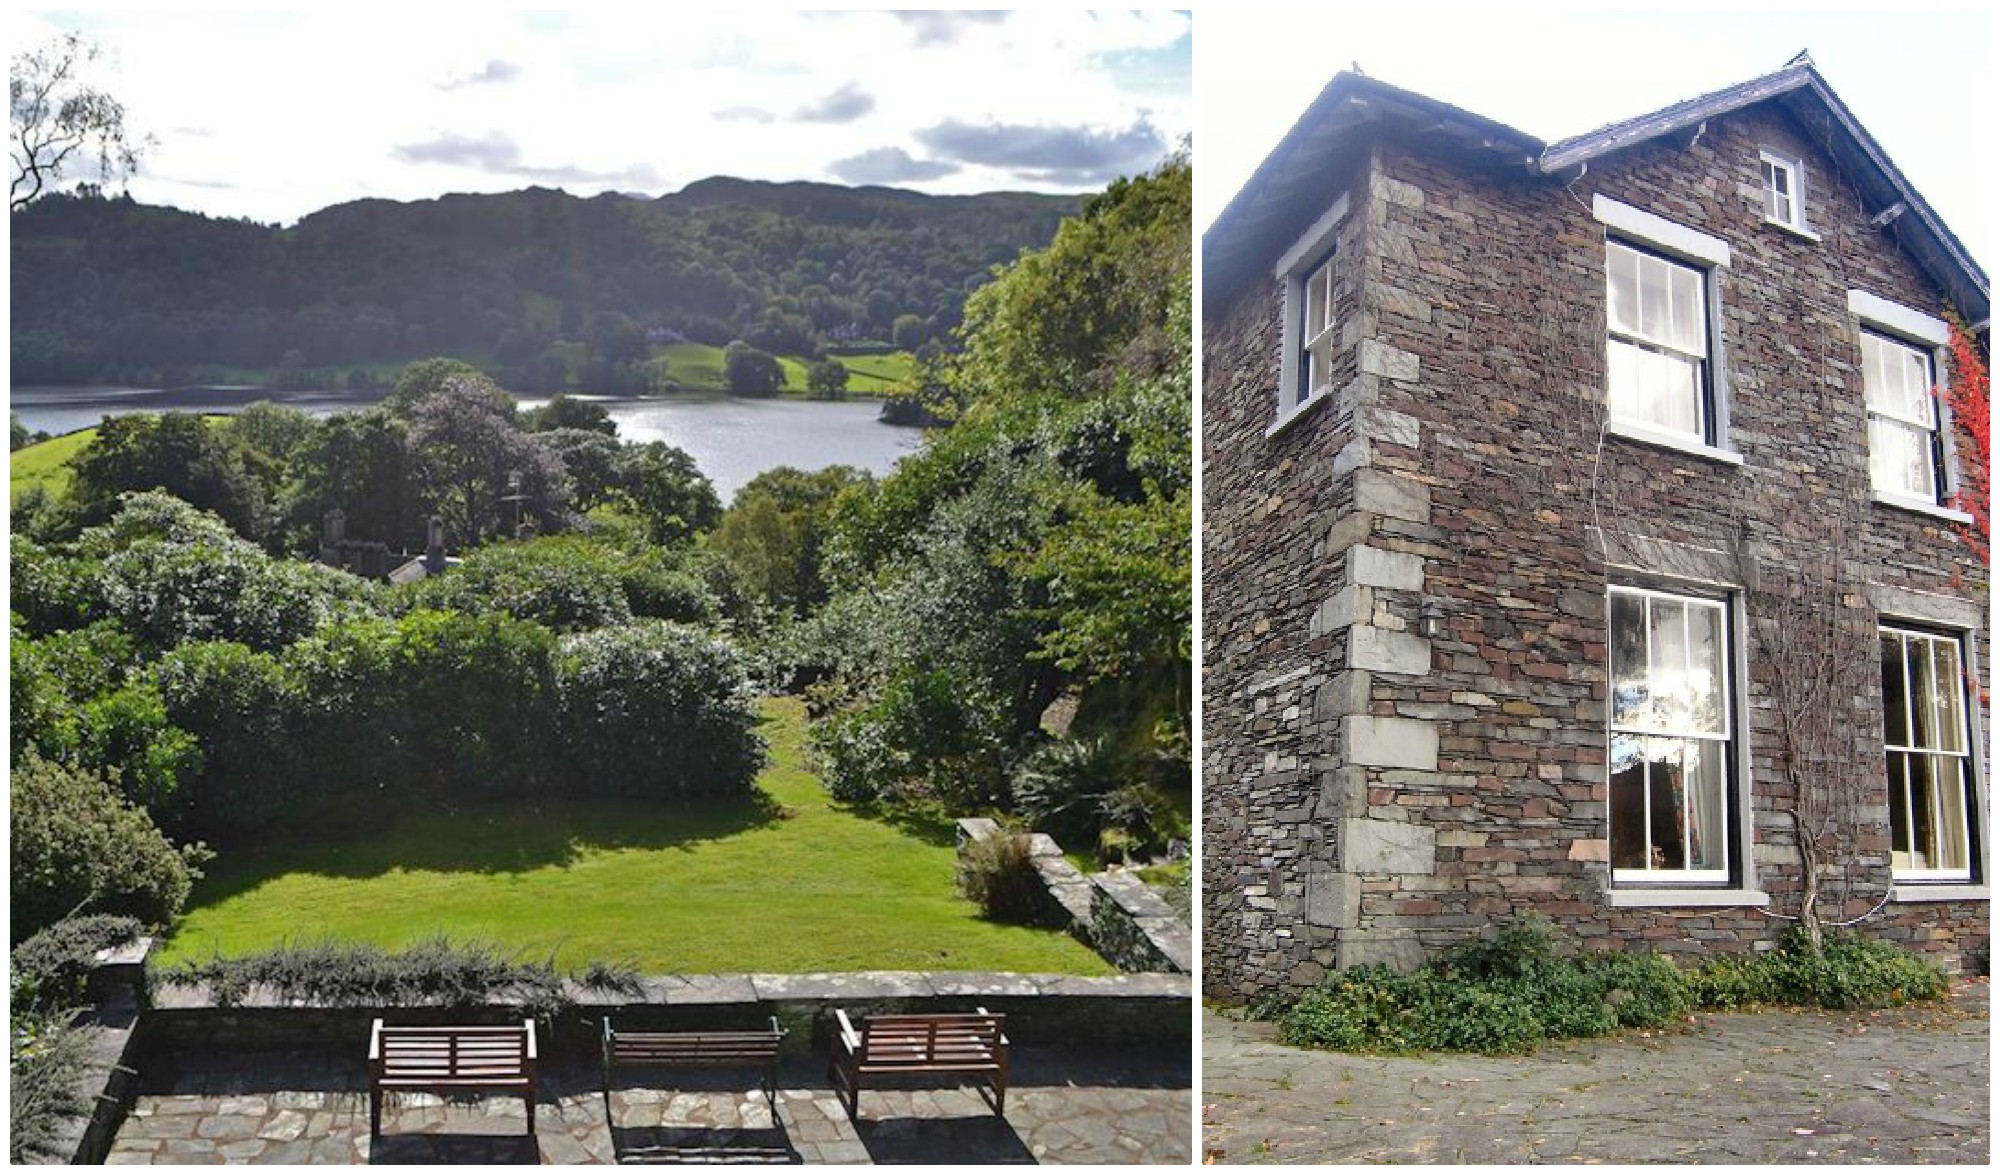 Self-catering apartment for 6 with spectacular view of Grasmere from the mature gardens